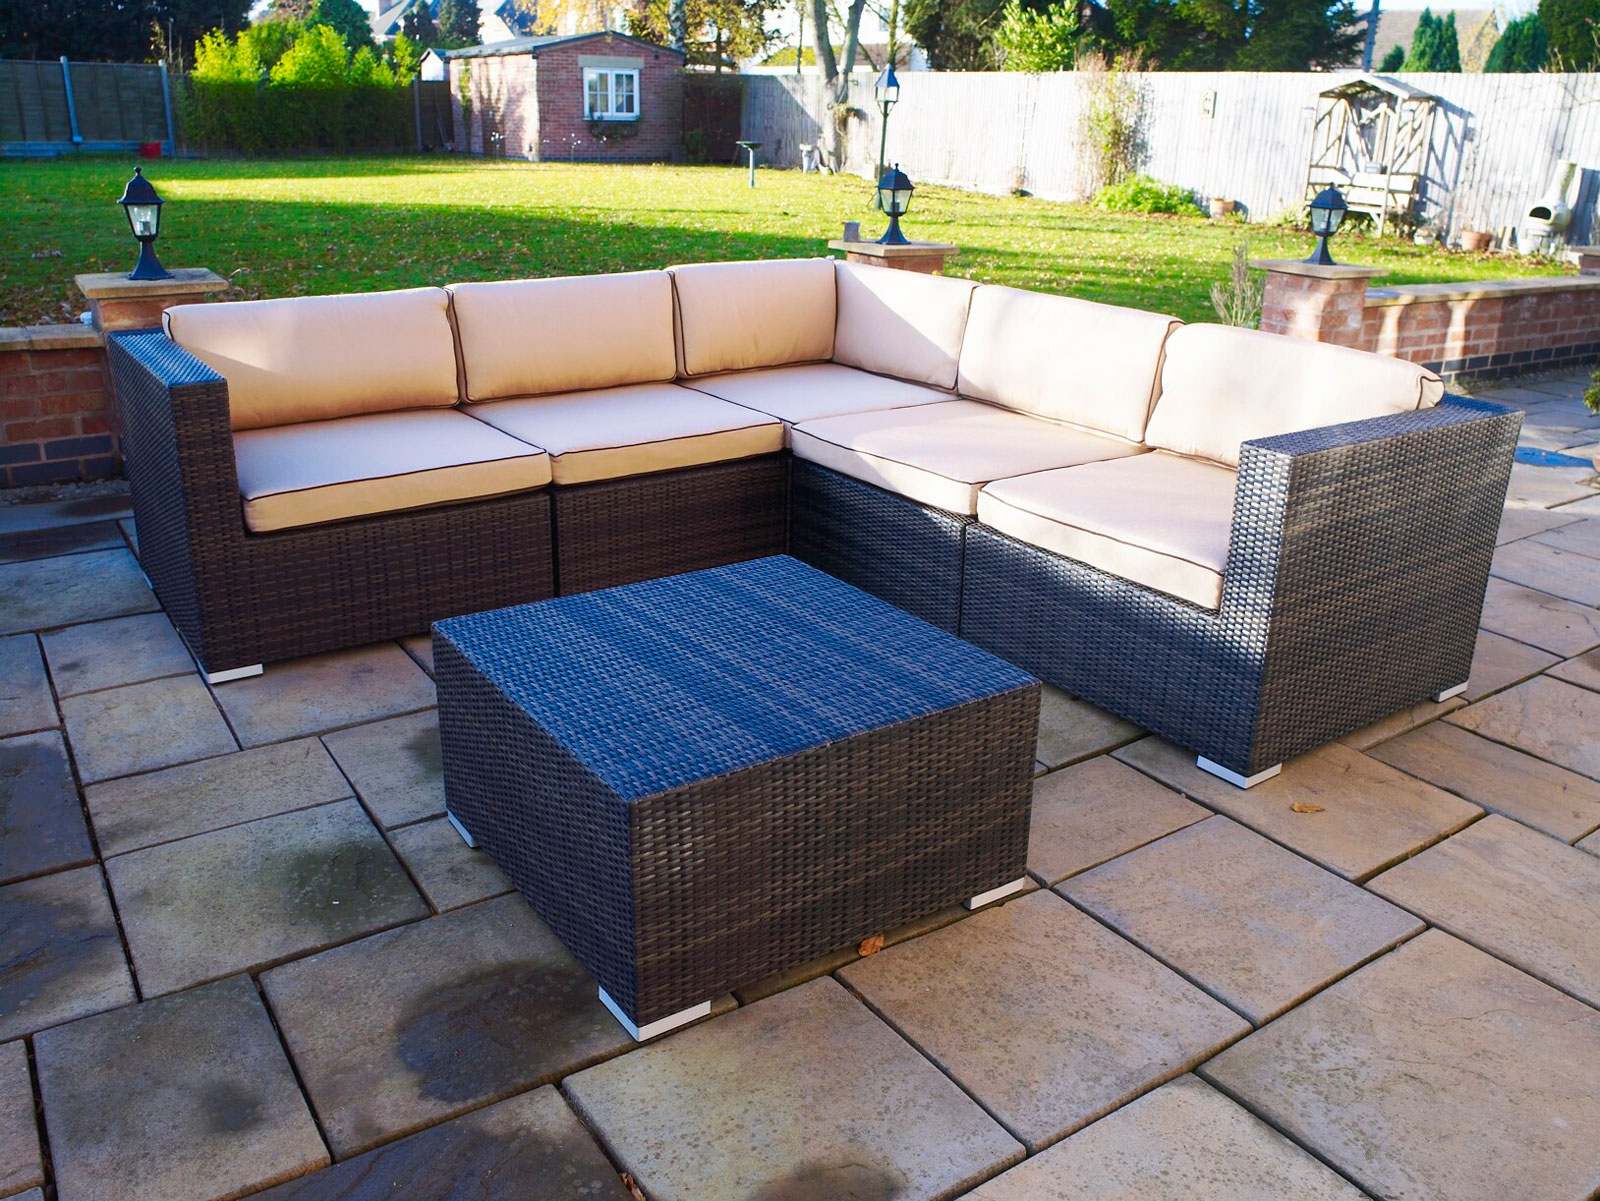 Melbourne Outdoor Rattan Garden Furniture Corner Suite Ebay - Outdoor Dining Furniture Clearance Melbourne